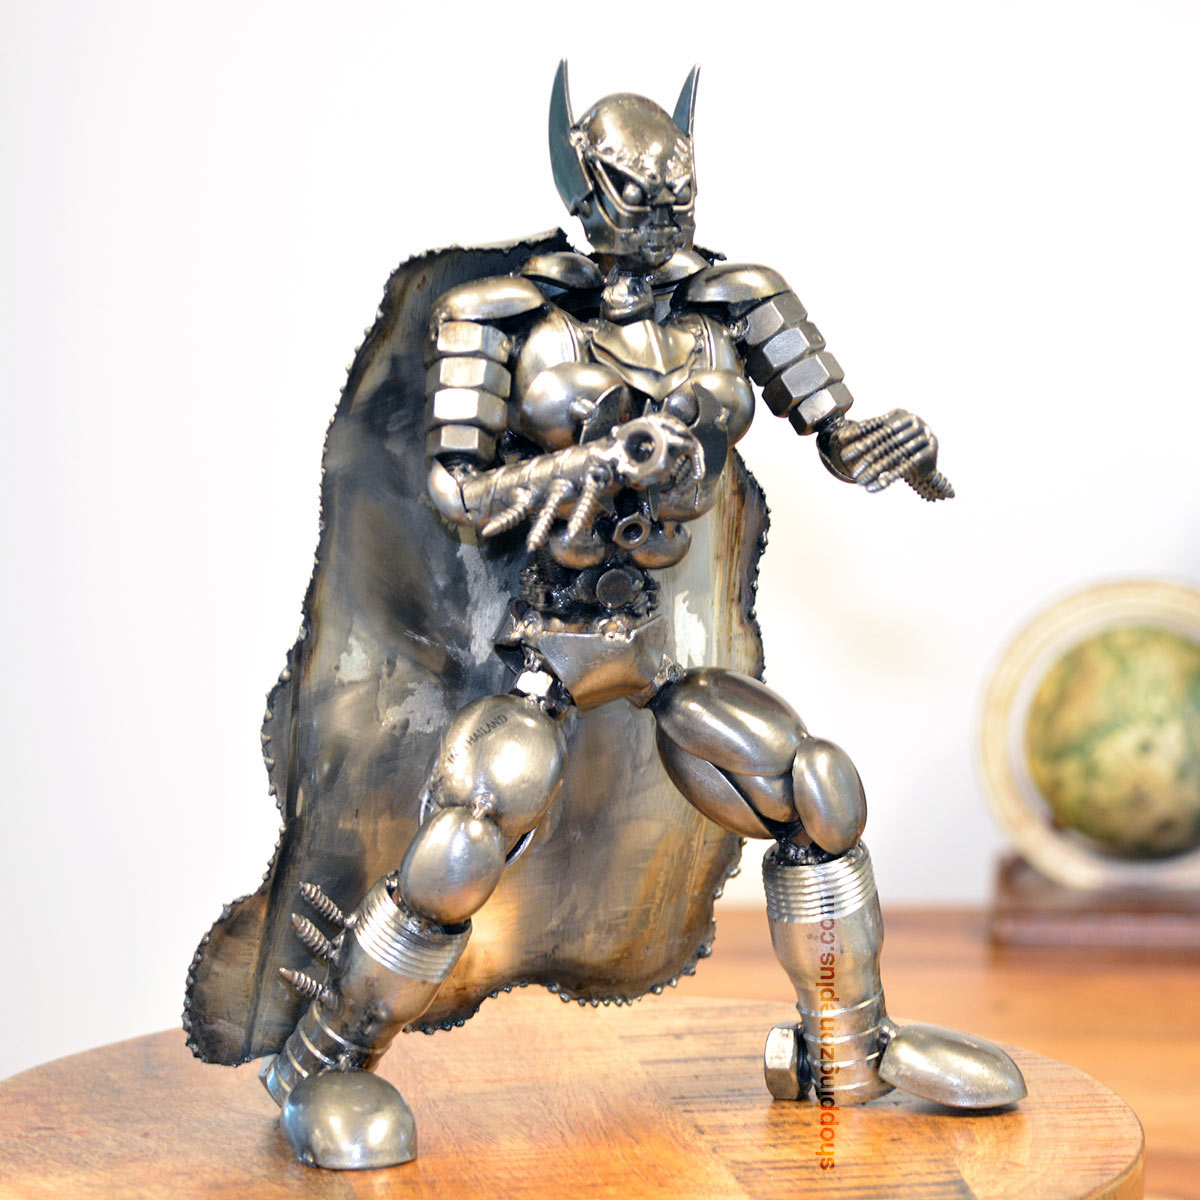 Batman Metal Sculpture Marvel Warrior Model Recycled